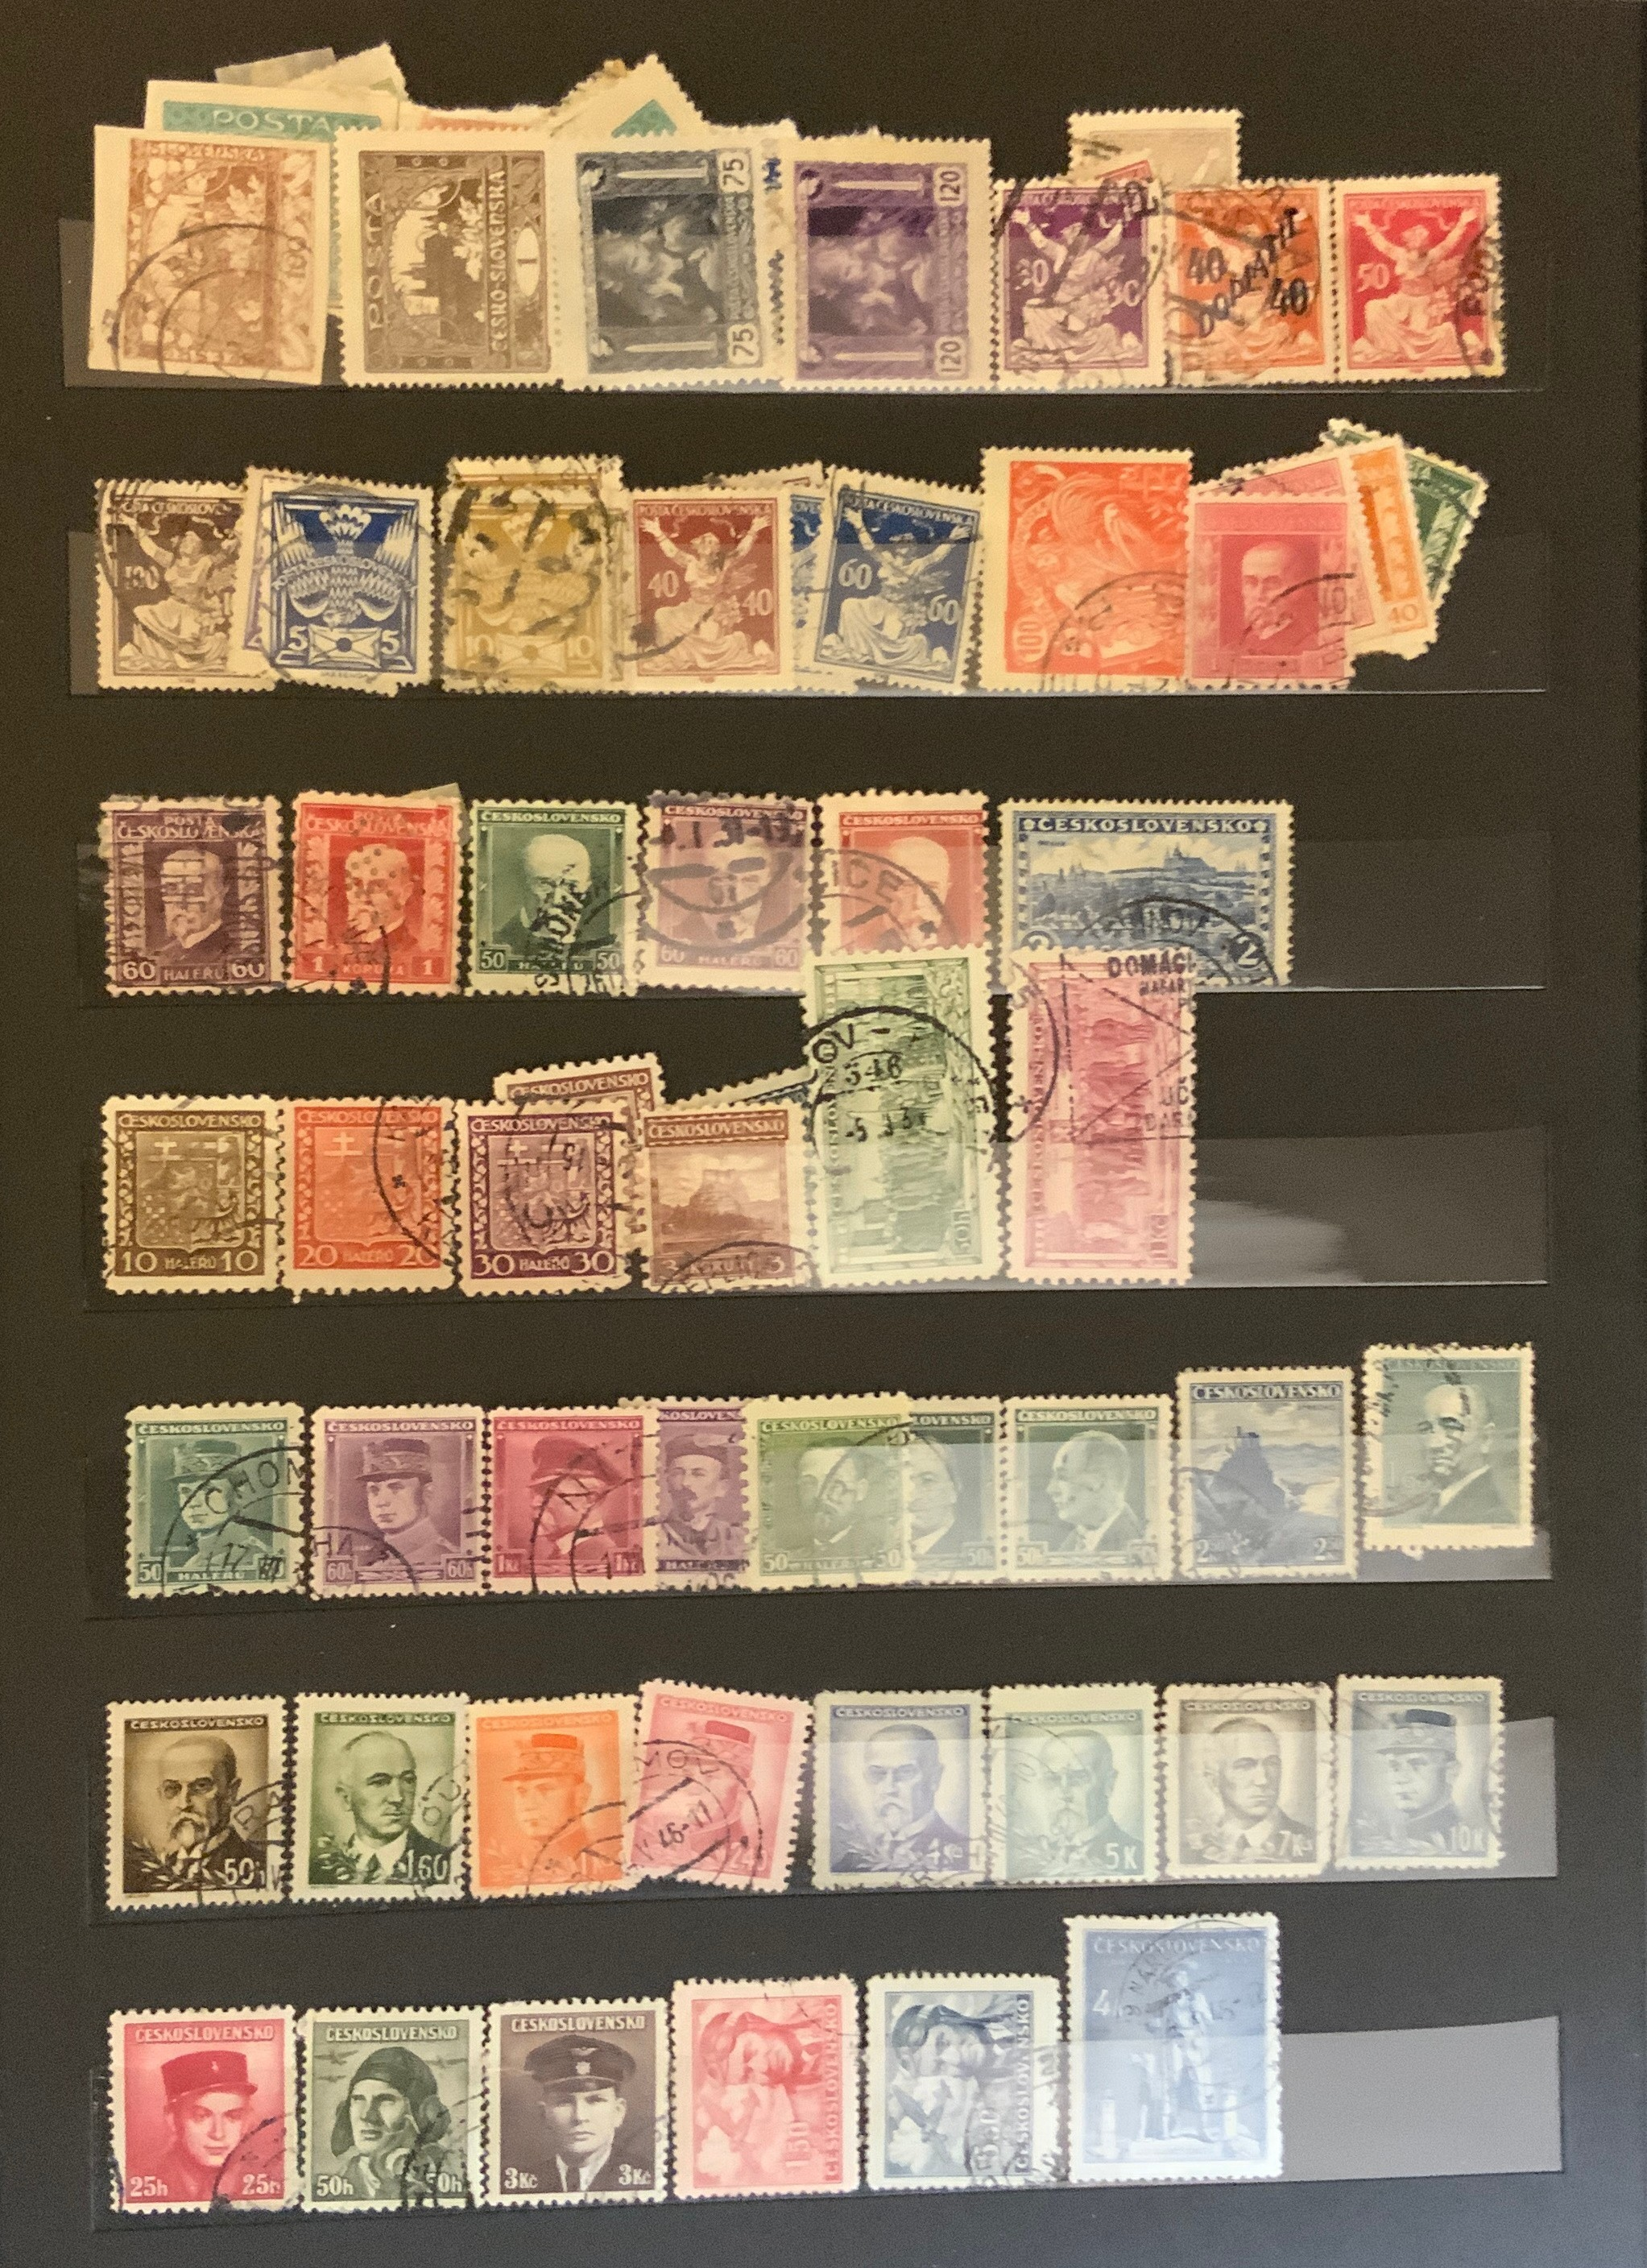 STOCKBOOK WITH STAMPS FROM VARIOUS COUNTRIES INCLUDING AUSTRIA, BELGIUM, FRANCE - Image 6 of 16